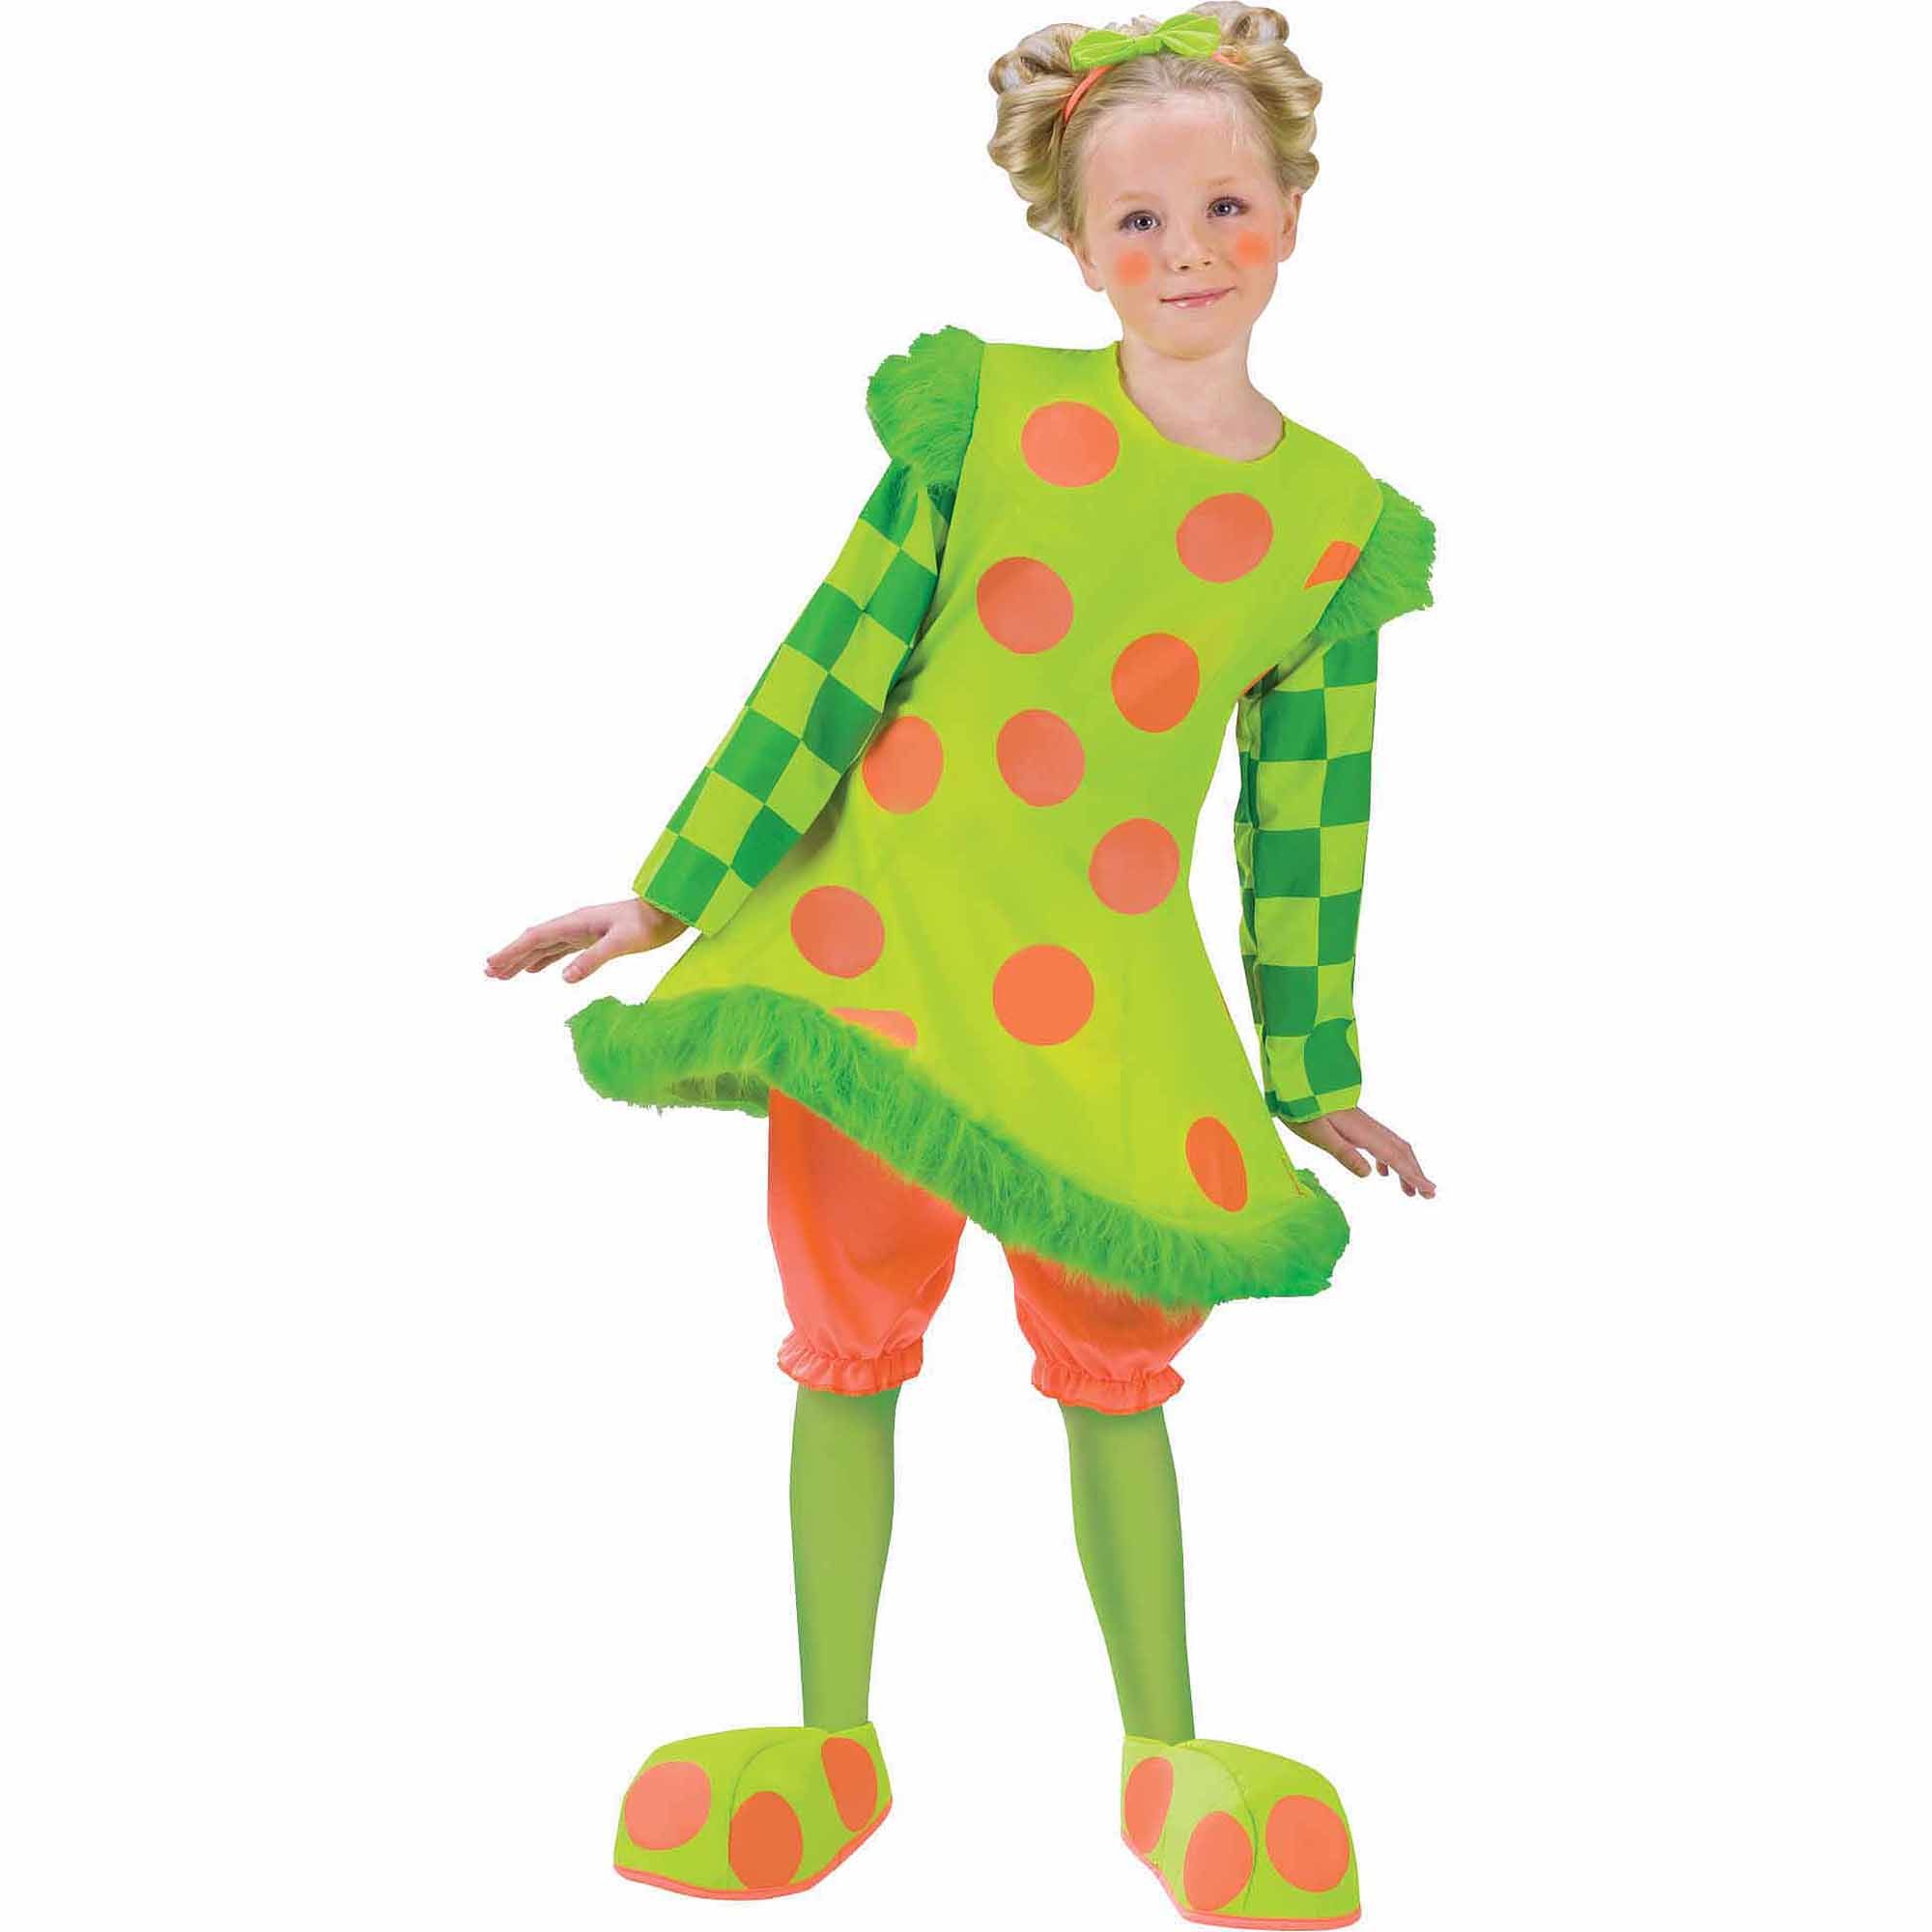 Lolli The Clown Child Girl Halloween Costume